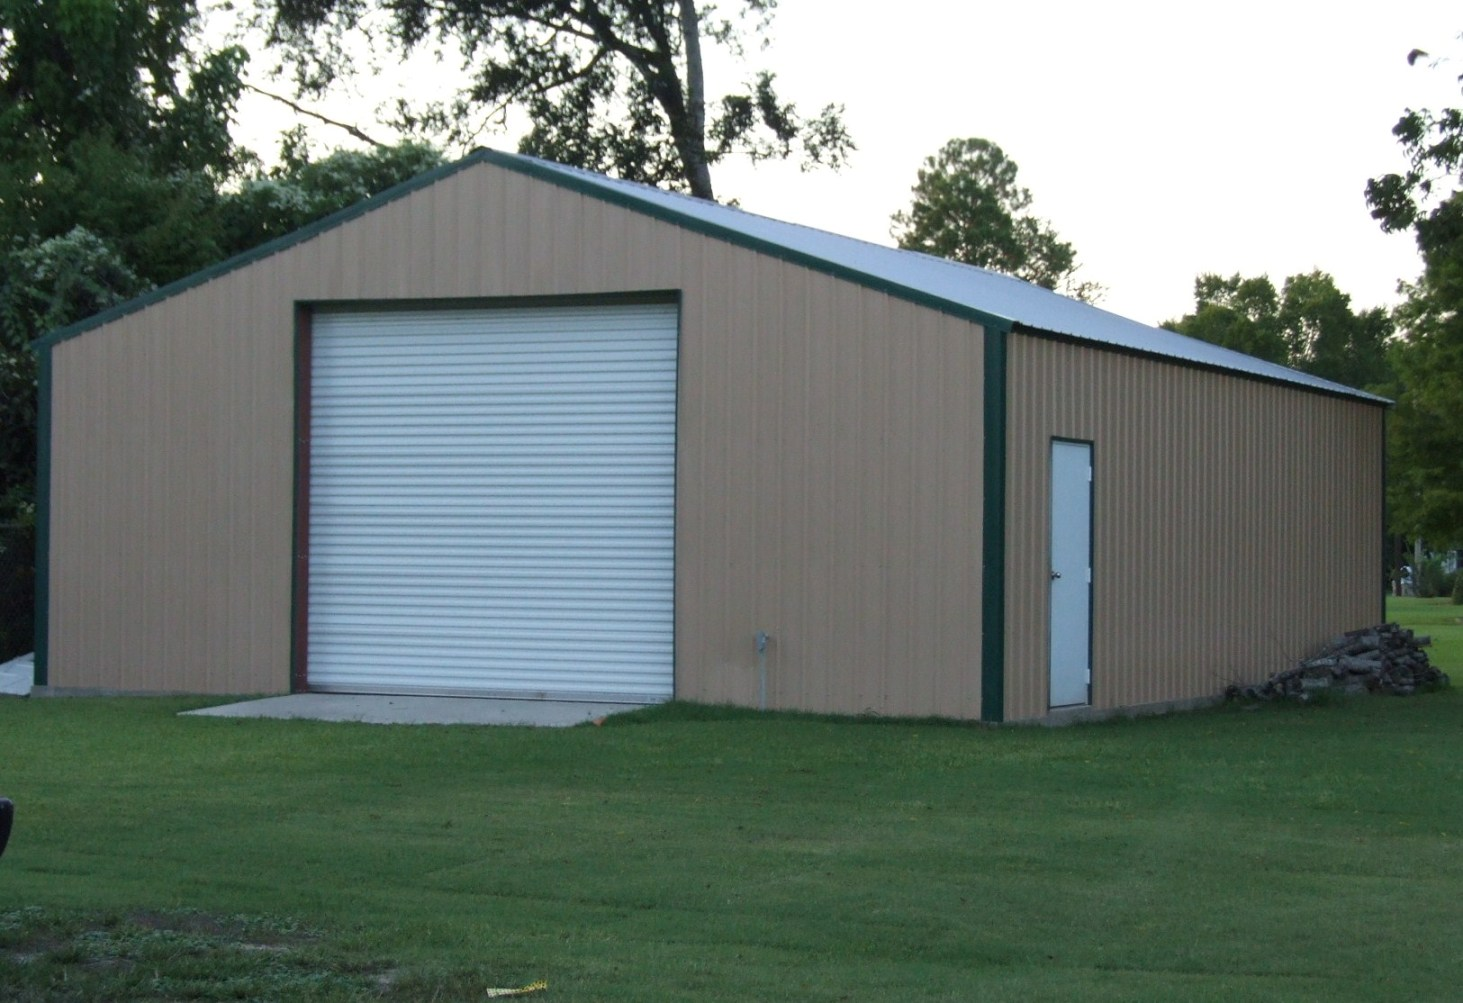 Metal buildings homes pictures images for Metal buildings made into houses